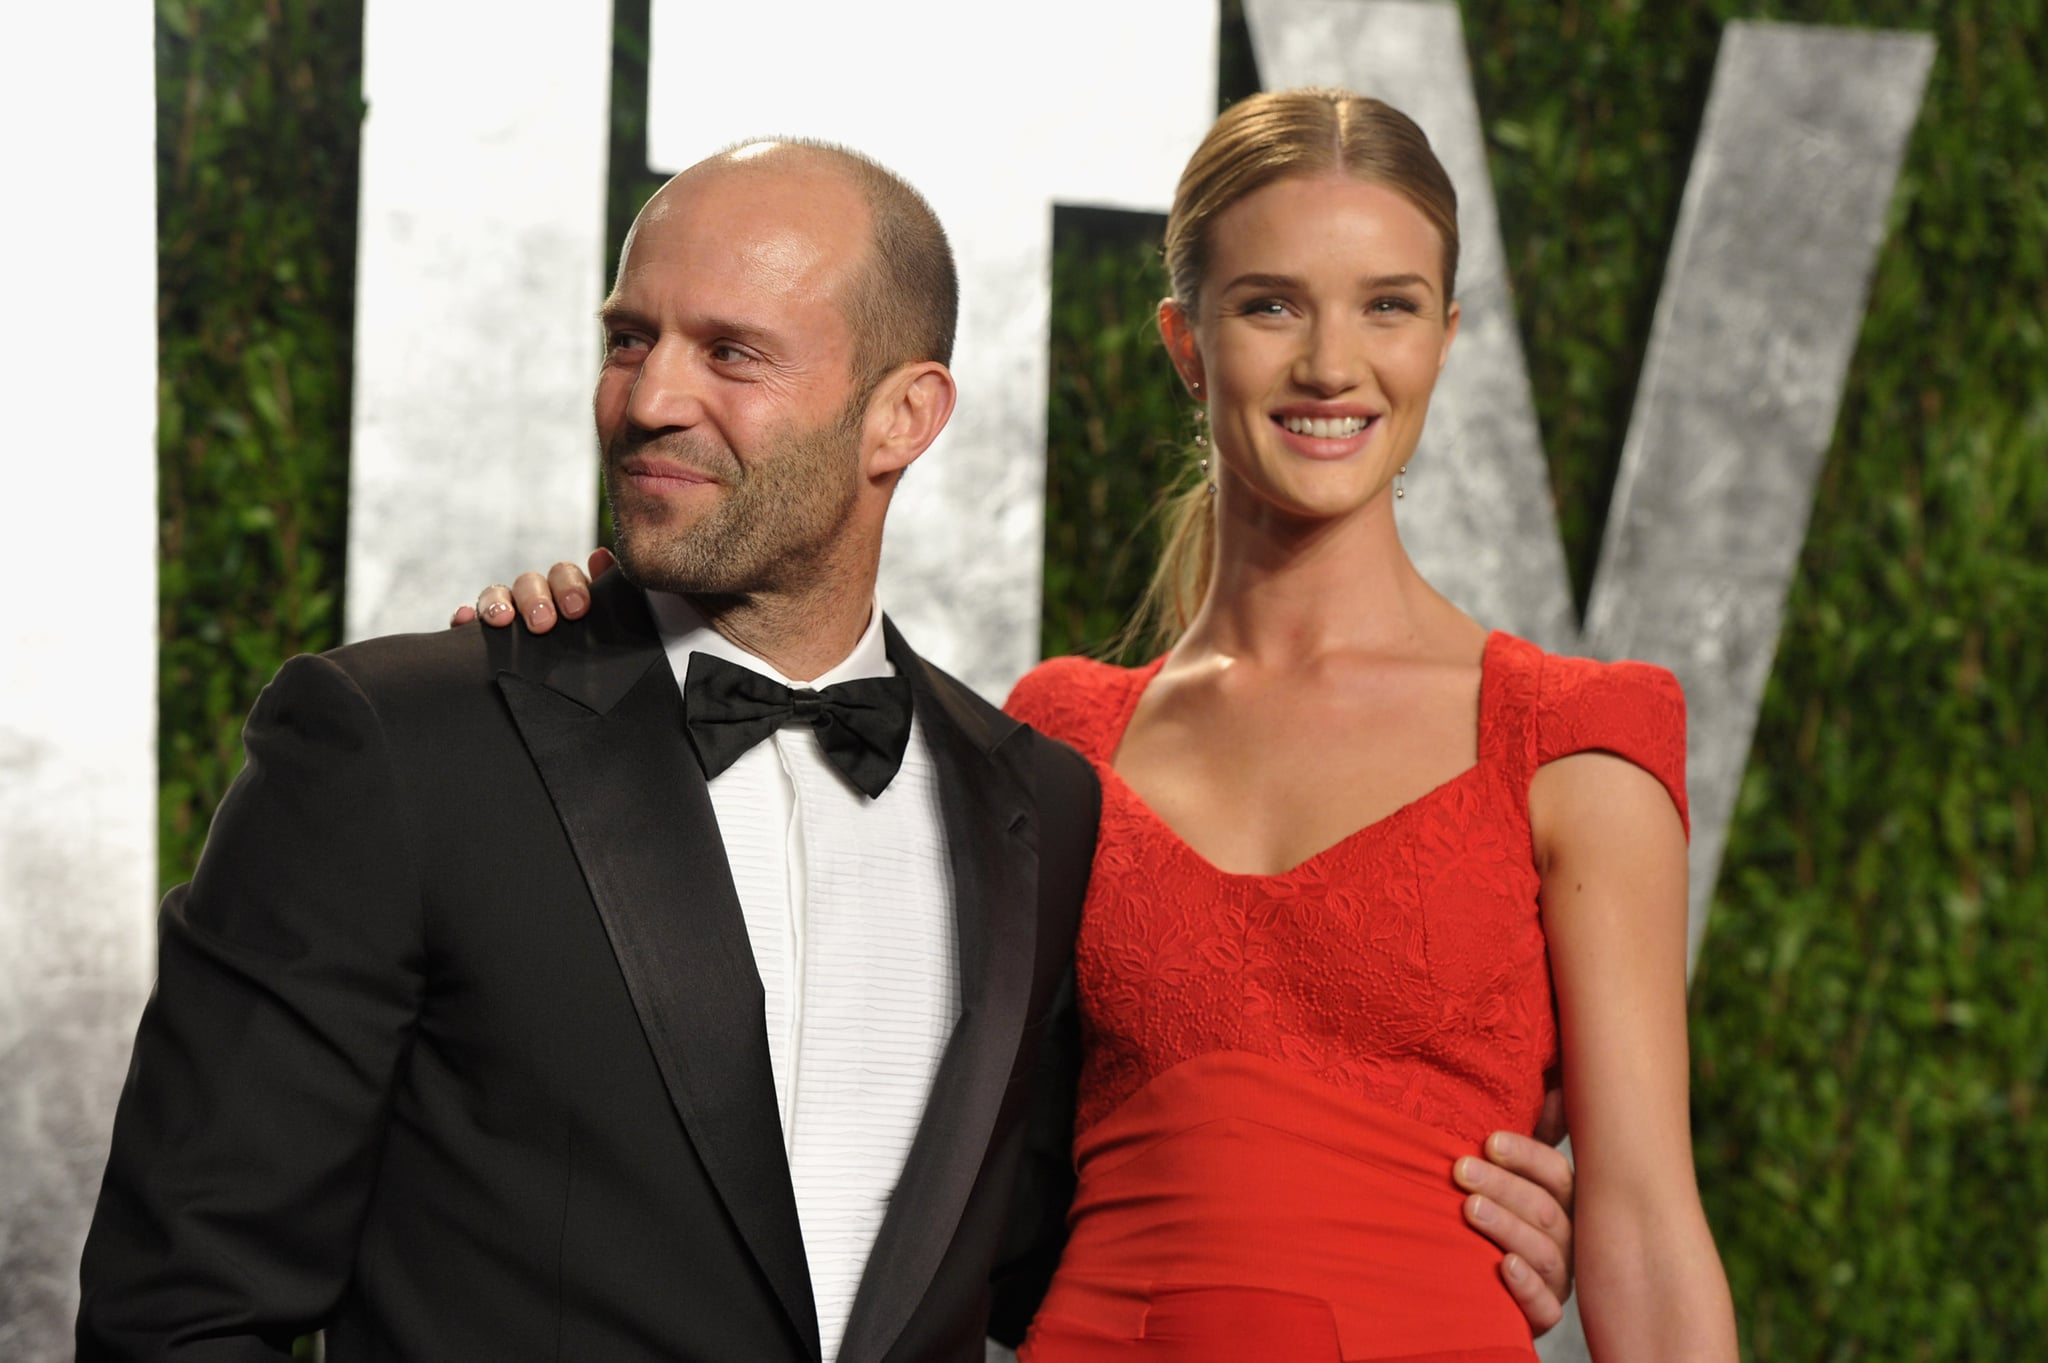 Jason Statham and girlfriend Rosie Huntington-Whiteley at ...